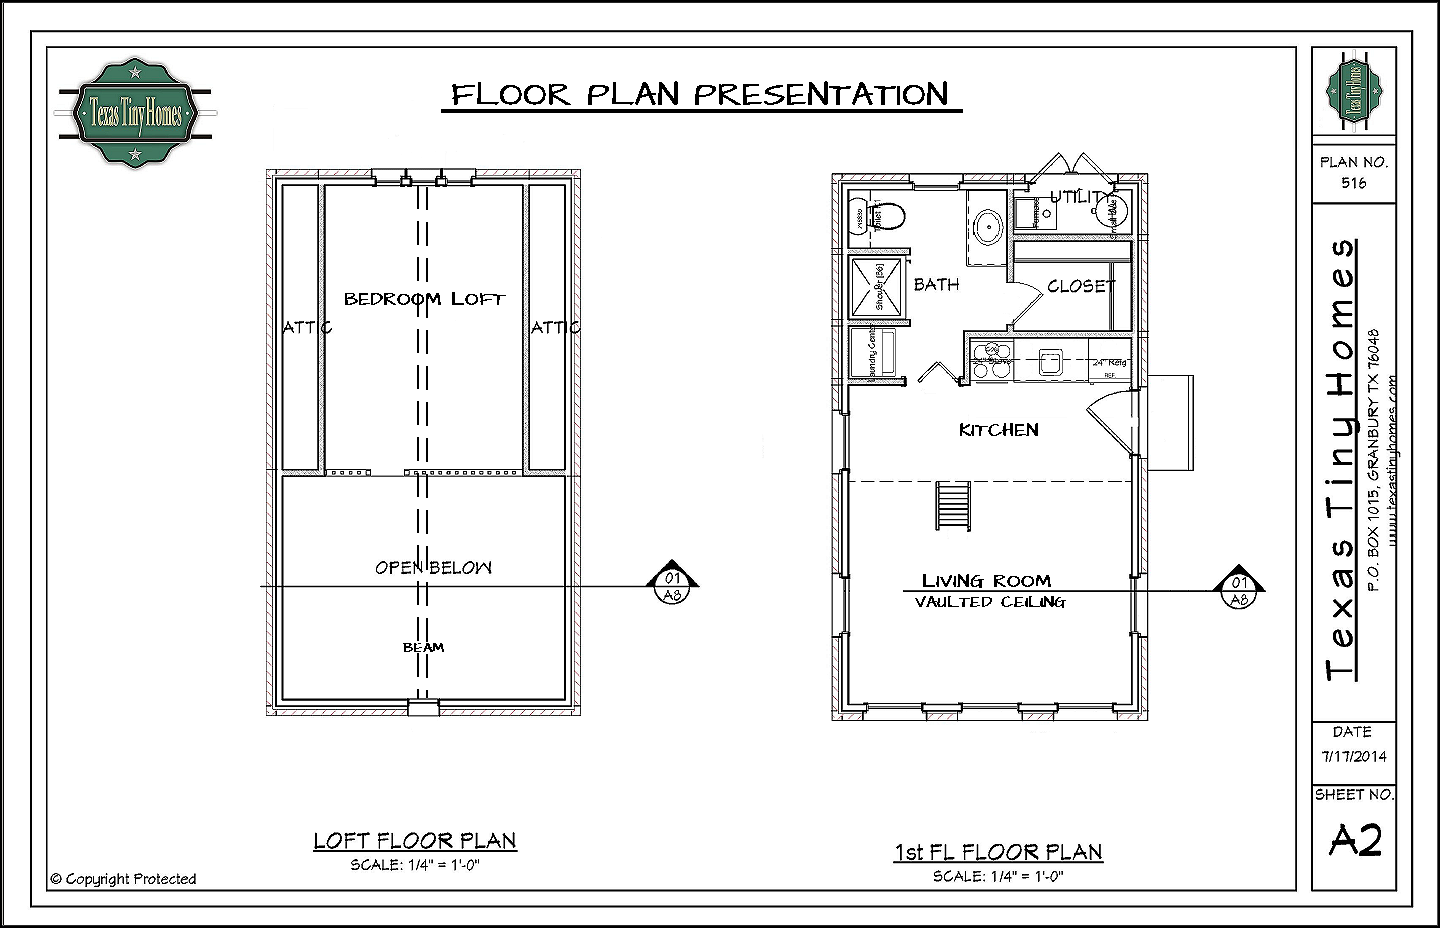 Texas tiny homes plan 516 for Small house plans texas